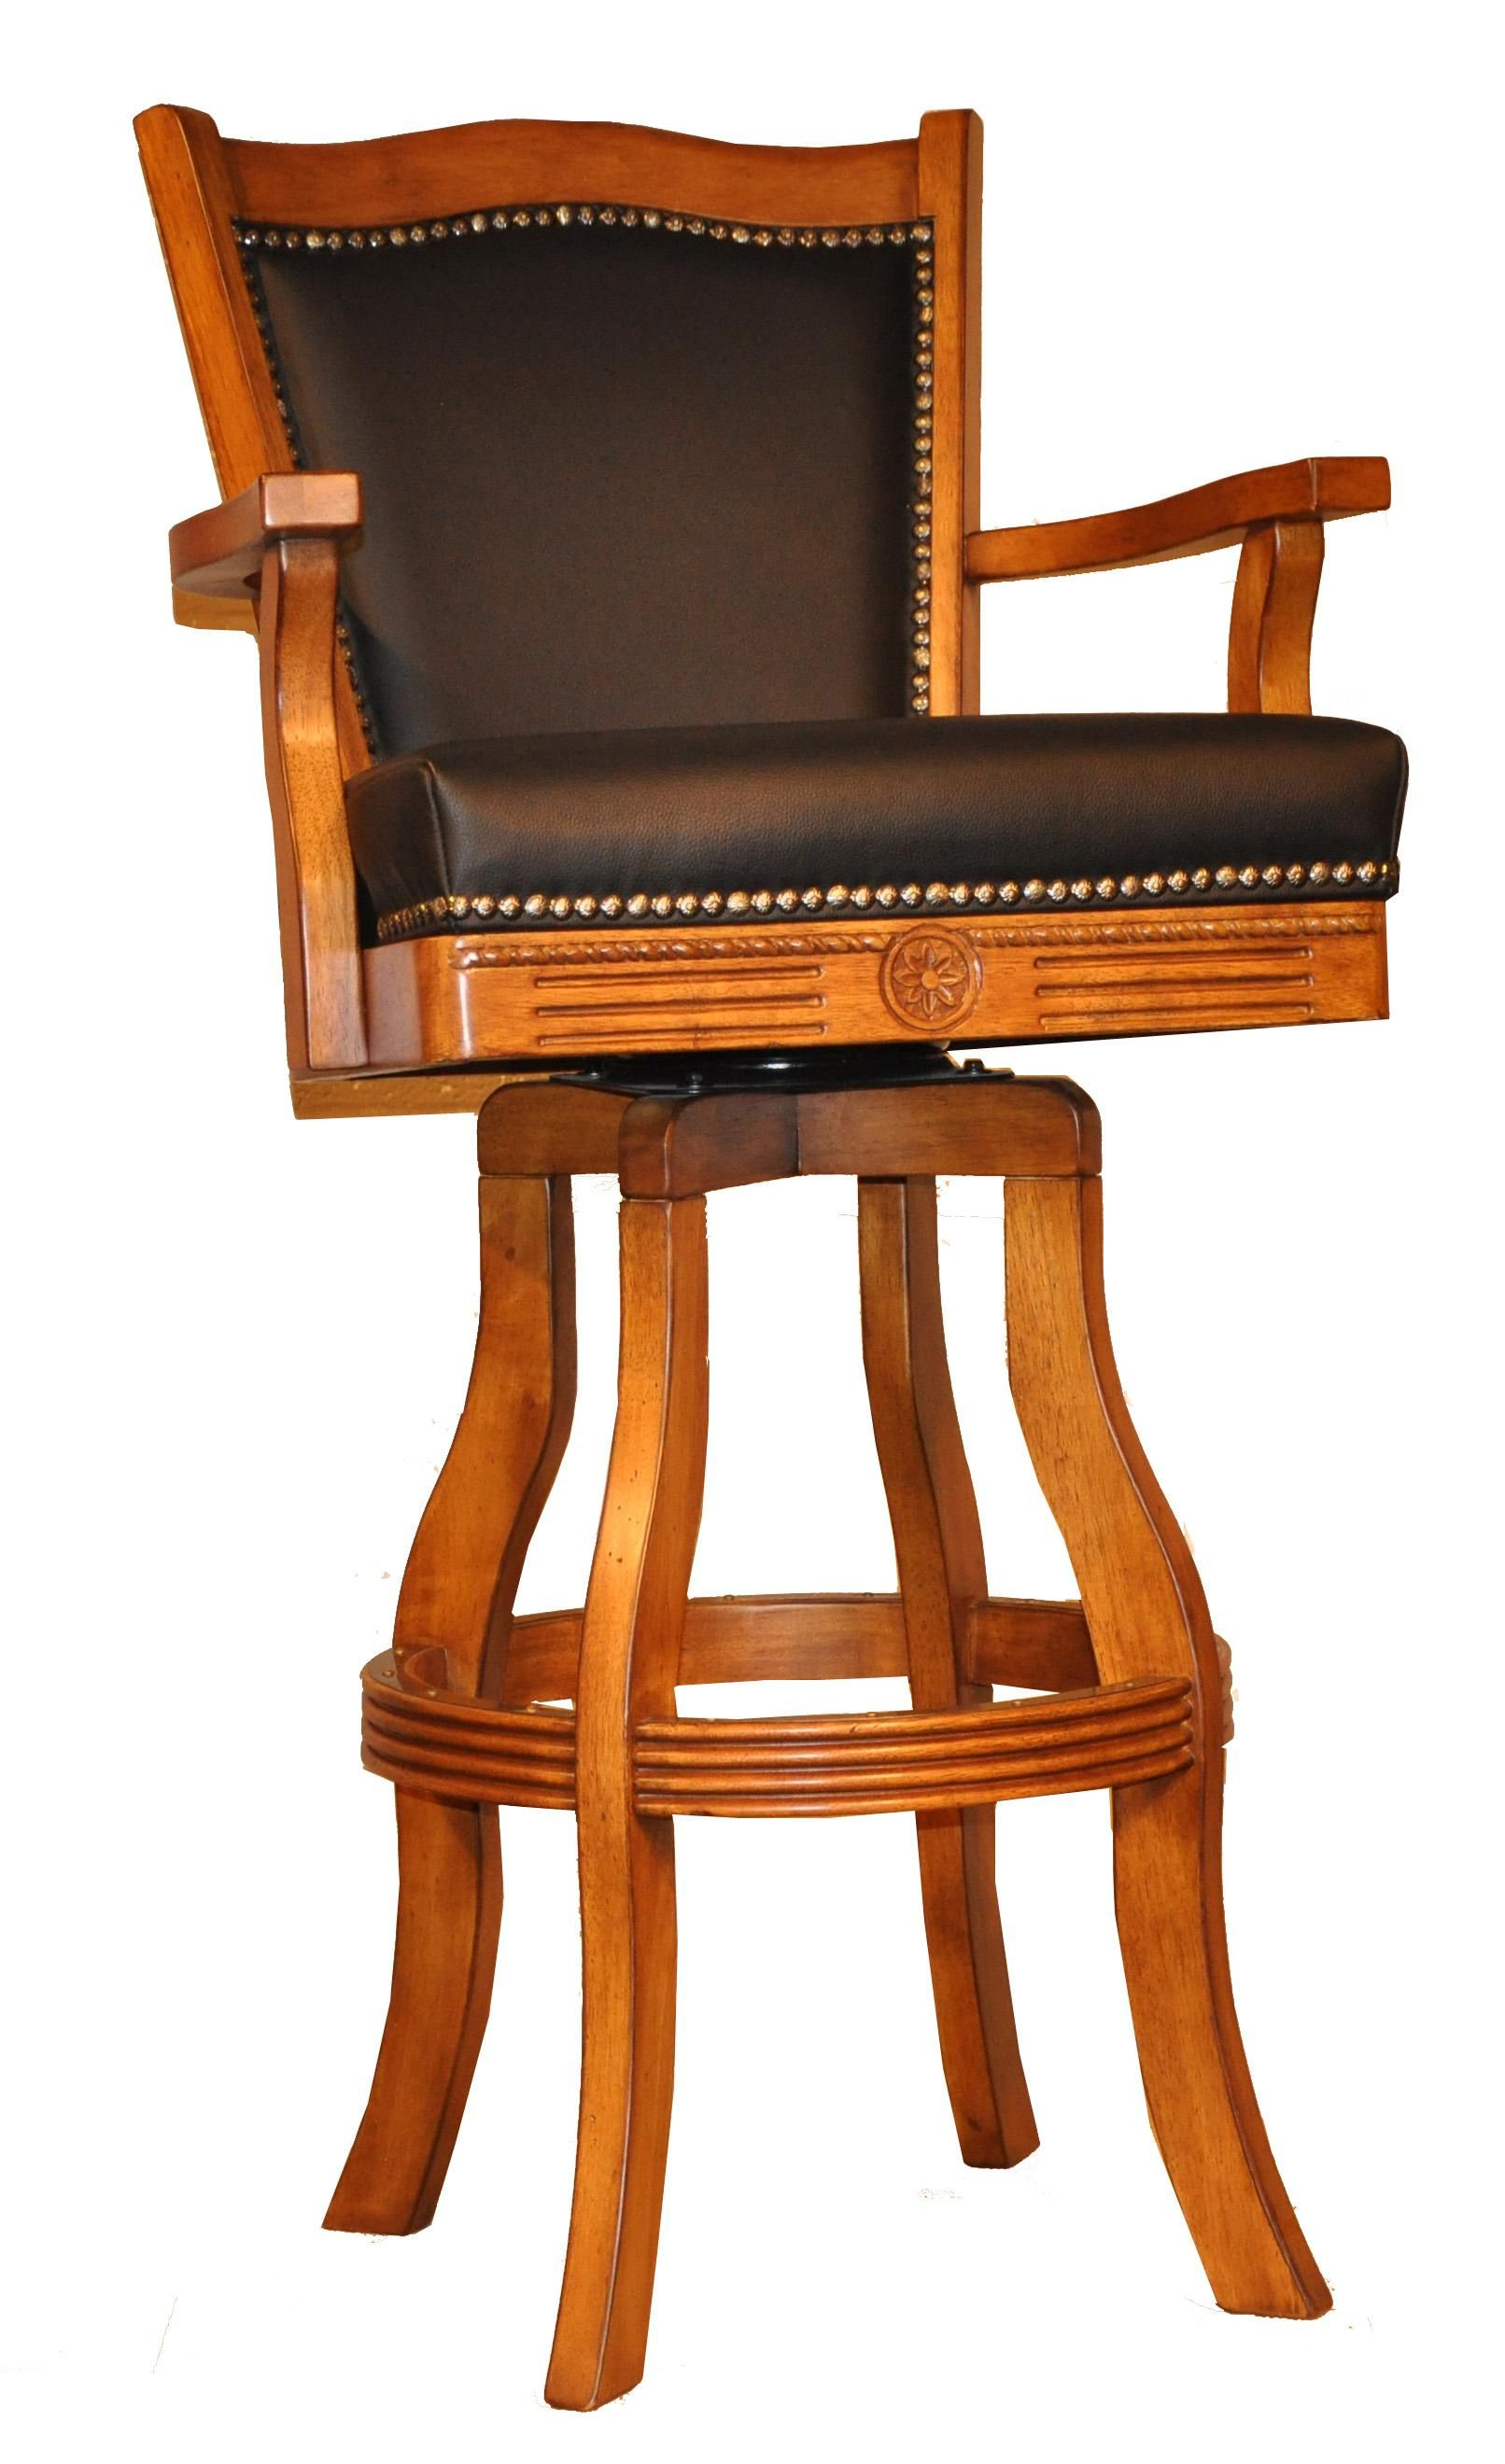 Classy wooden swivel bar stool design inspiration in honey oak finish with dazzling leather top and back and arm support also four curves legs